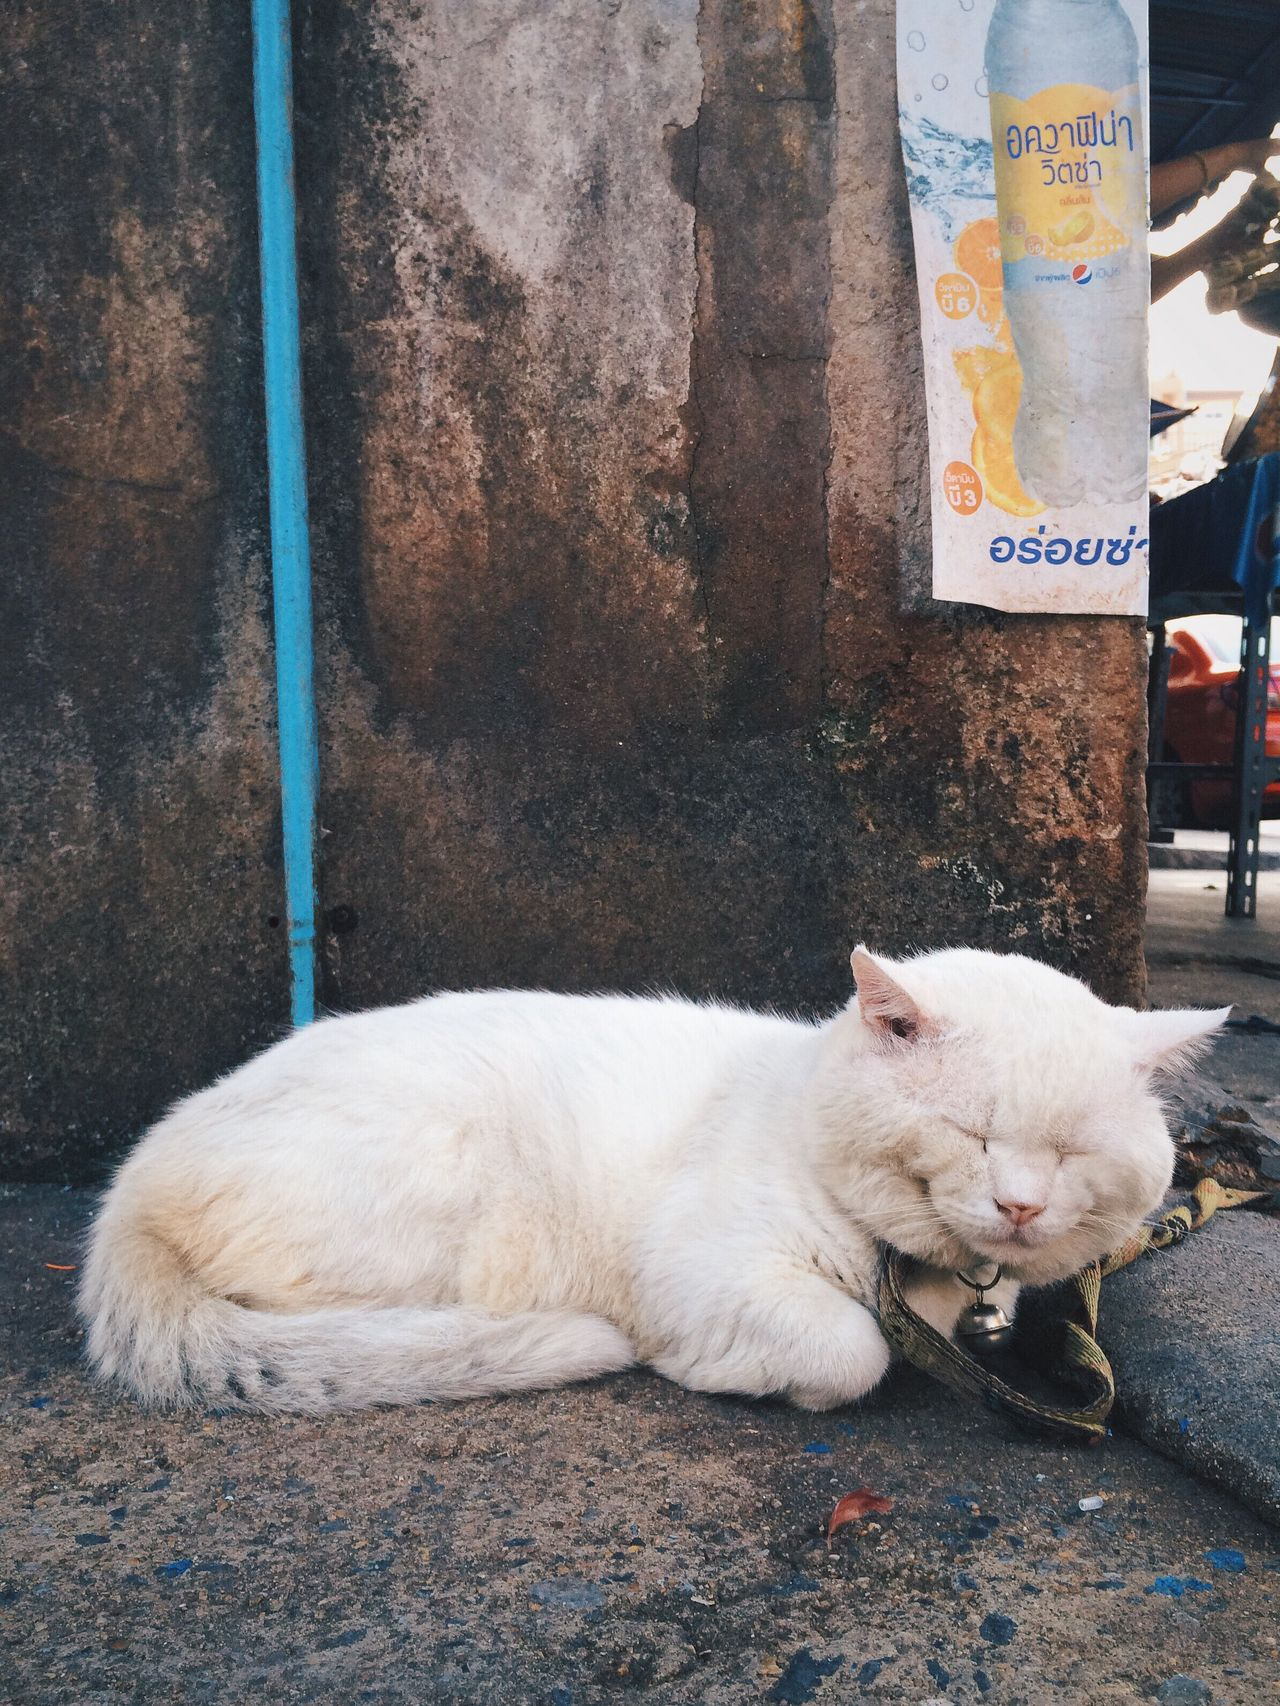 EyeEmNewHere Domestic Animals Animal Themes Mammal One Animal Livestock Pets Day Outdoors Cat White Sleepy Sleep Sitting Lazy Day Relaxing Nap Outdoor Ground Vintage Cute Chat